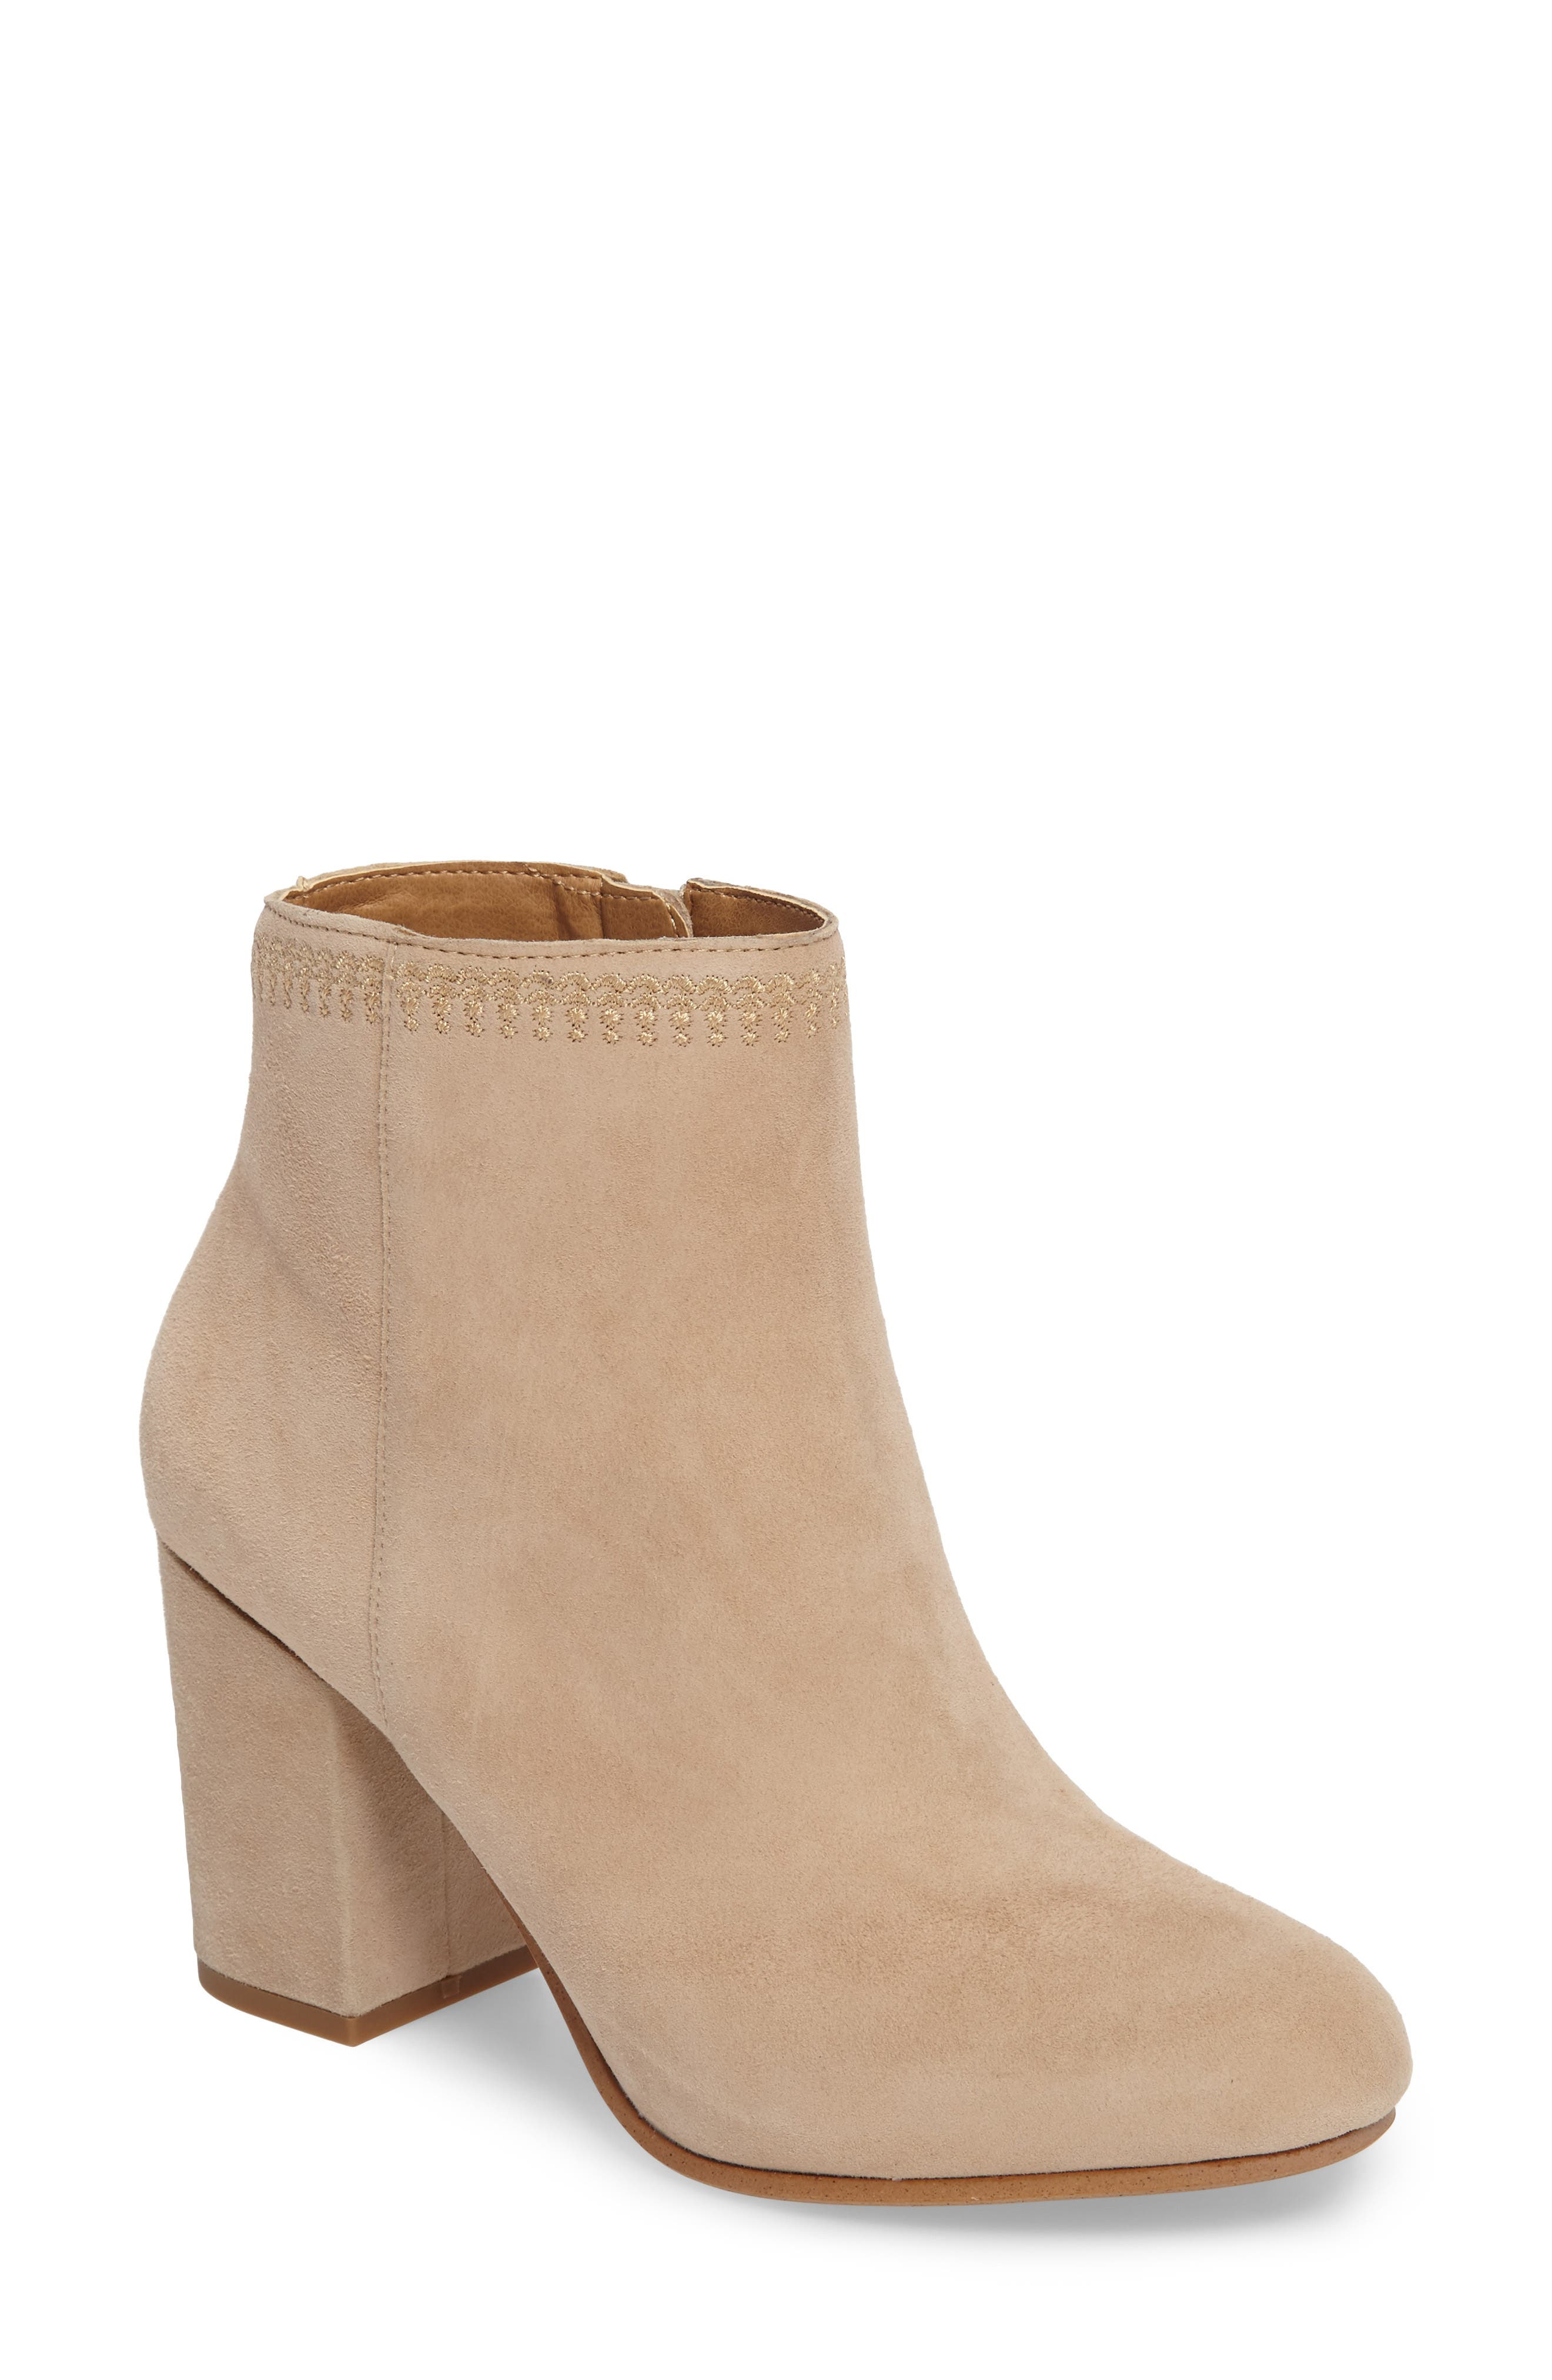 Alternate Image 1 Selected - Lucky Brand Salmah 2 Bootie (Women)